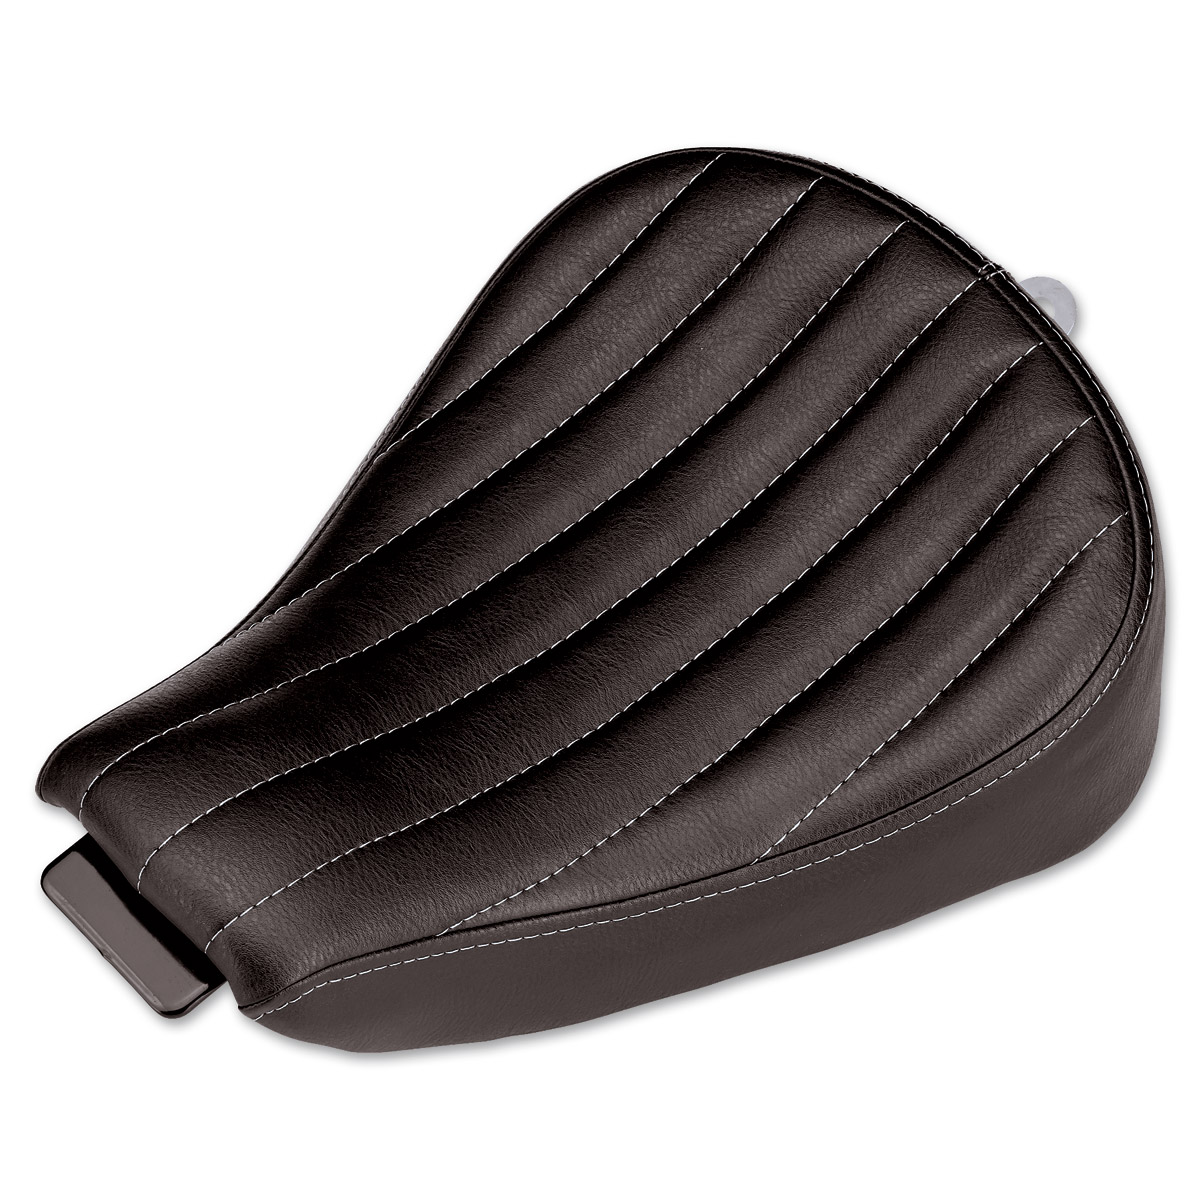 Biltwell Inc. Vertical Tuck and Roll Sporty-8 Solo Seat